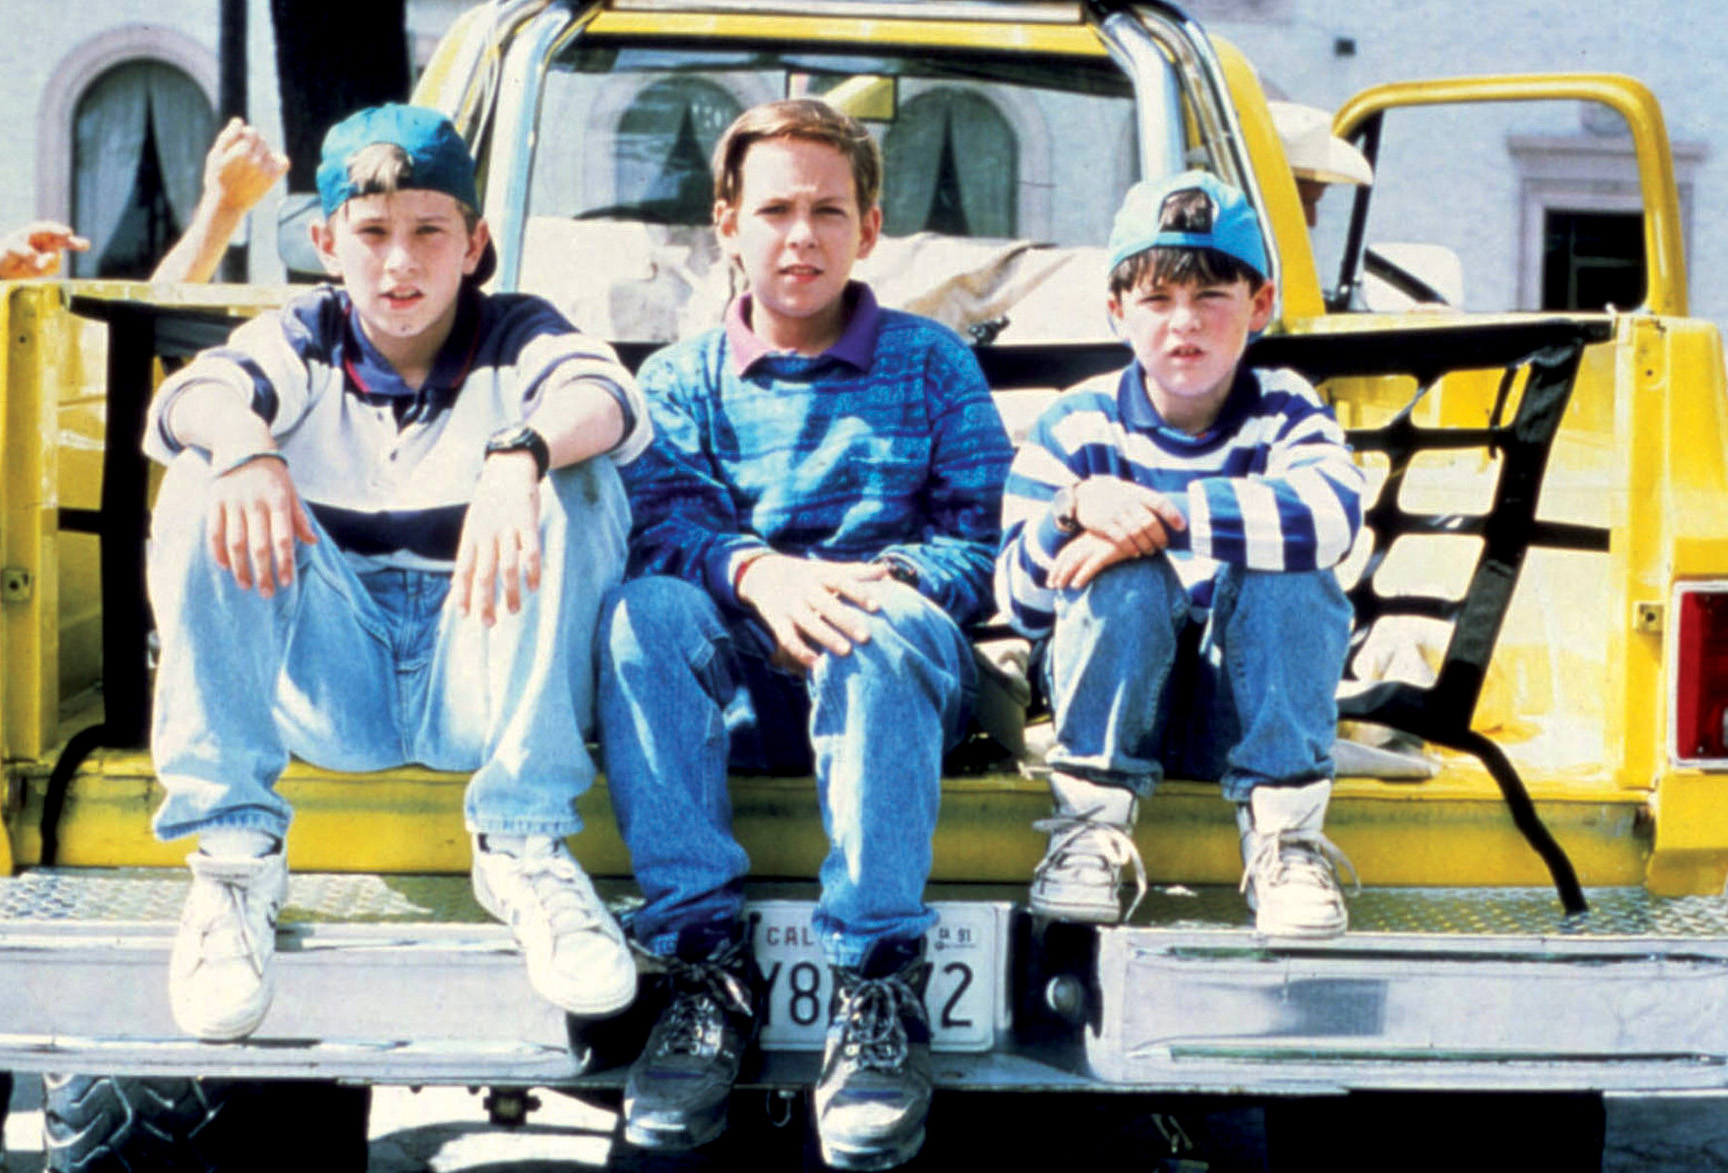 Chad Power, Max Elliott Slade, and Michael Treanor in 3 Ninjas: Knuckle Up (1993)